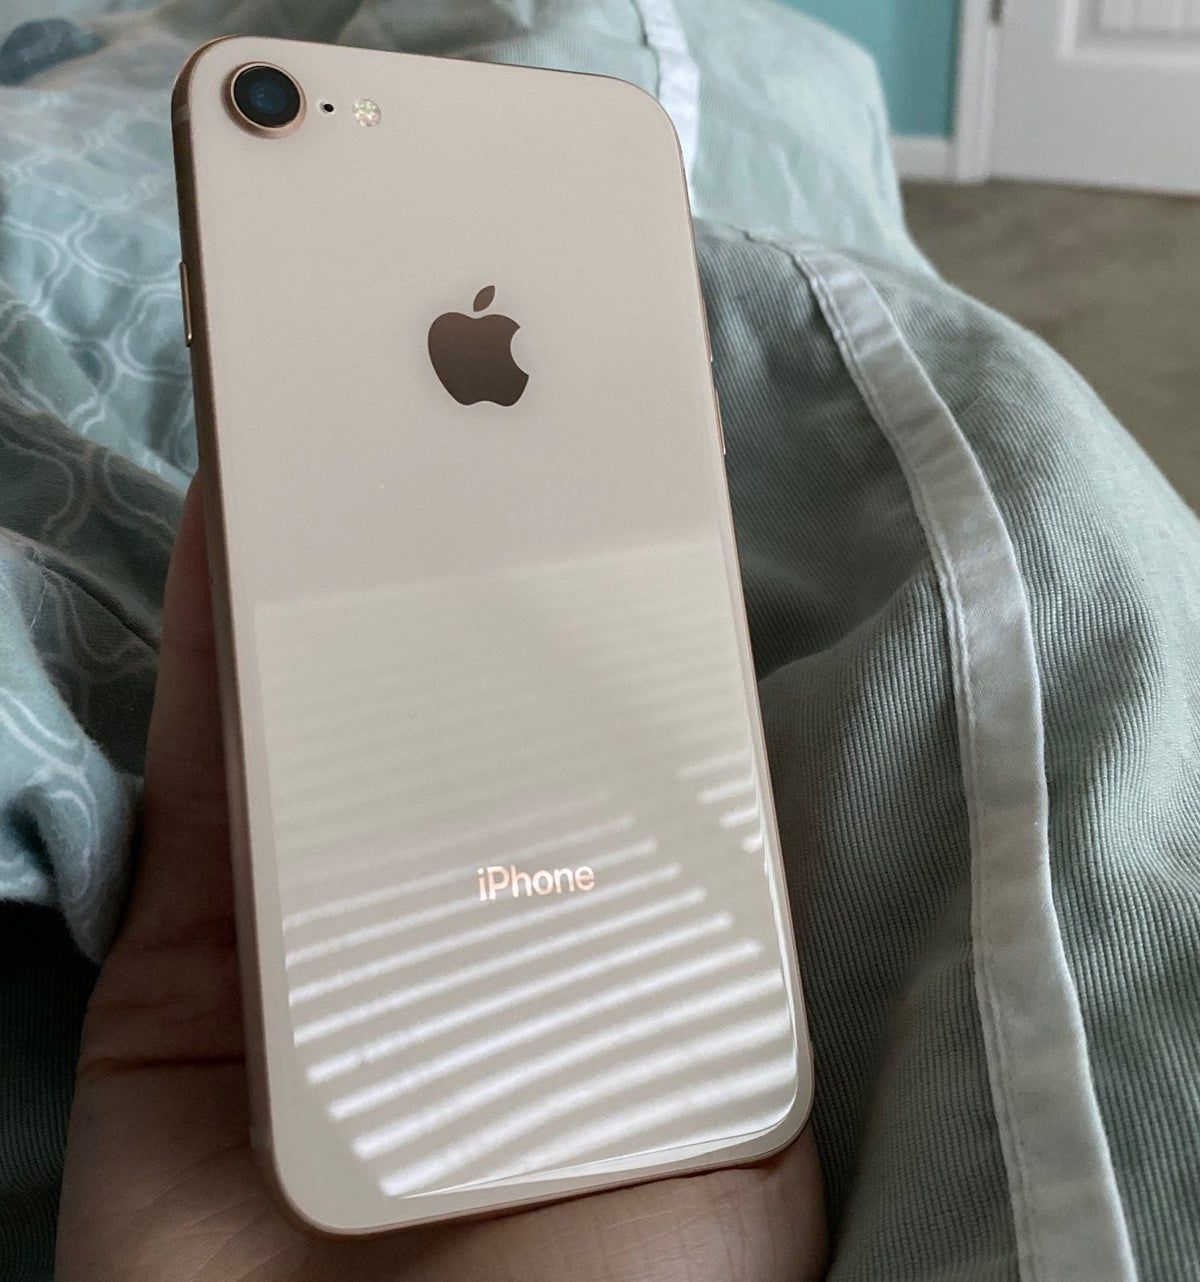 Iphone 8 Rose Gold Unlocked 64 Gb In 2021 Iphone Iphone 8 Apple Products